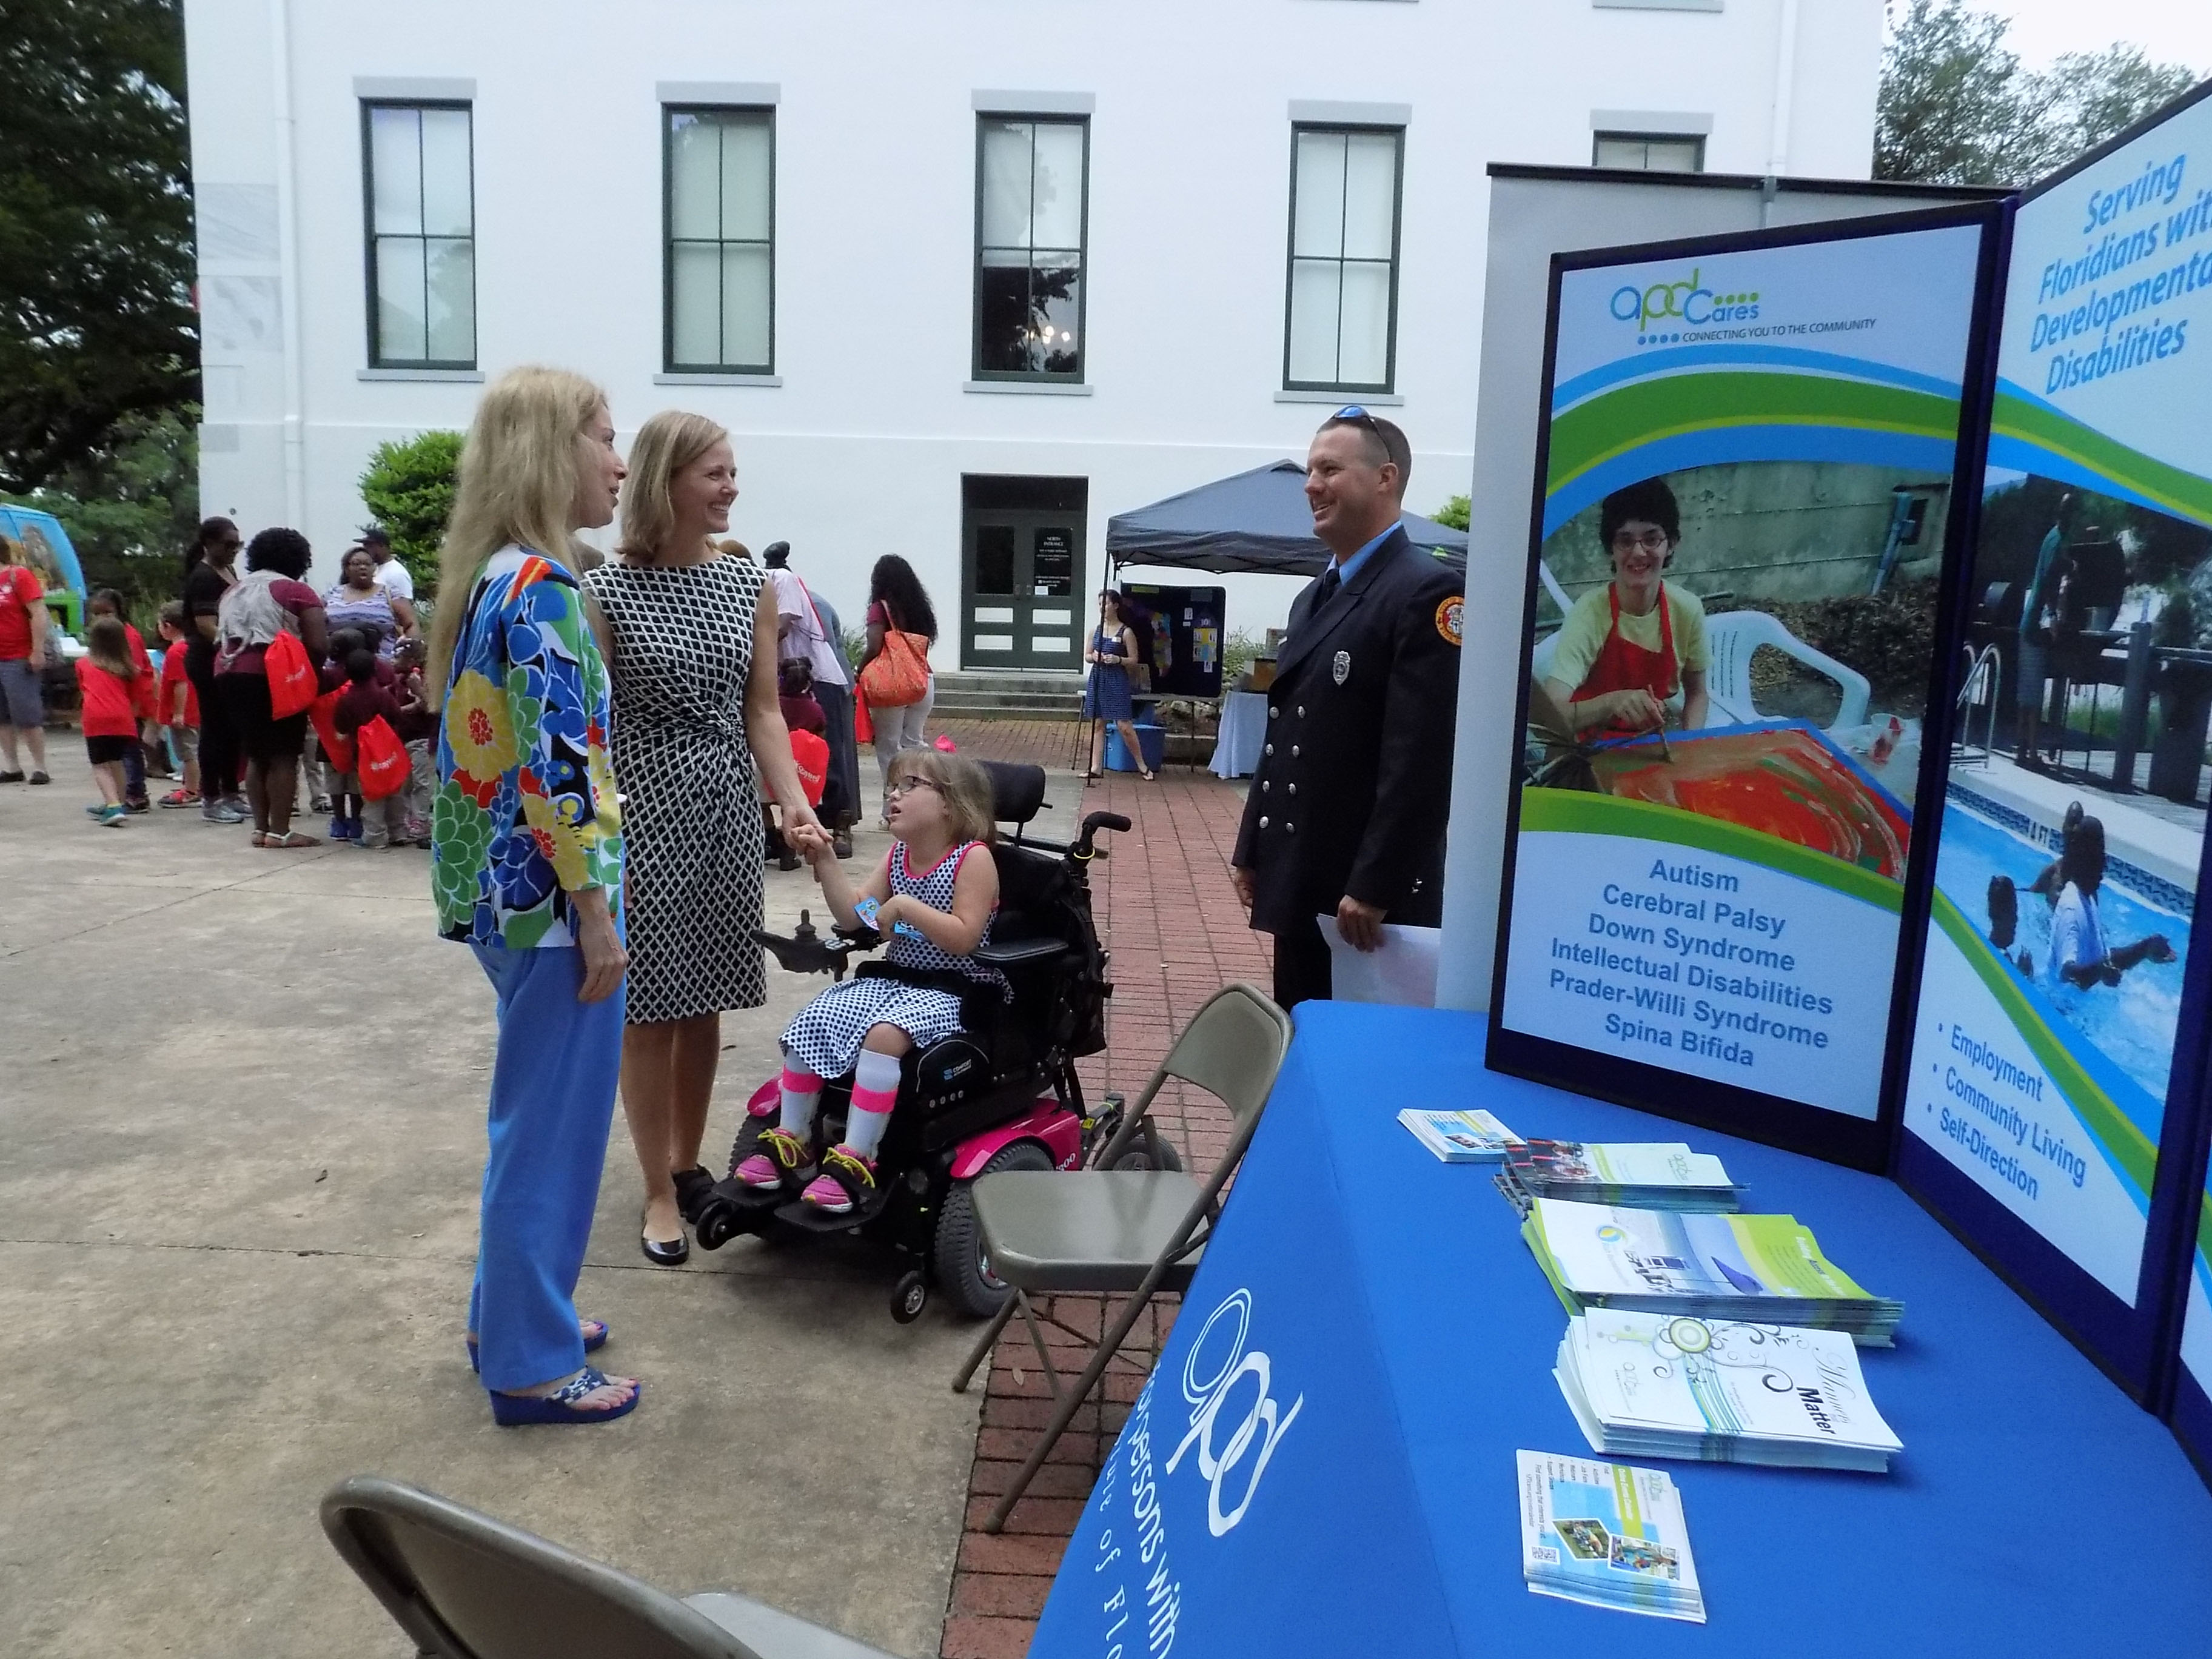 Melanie Etters helps a family at the APD exhibit table.